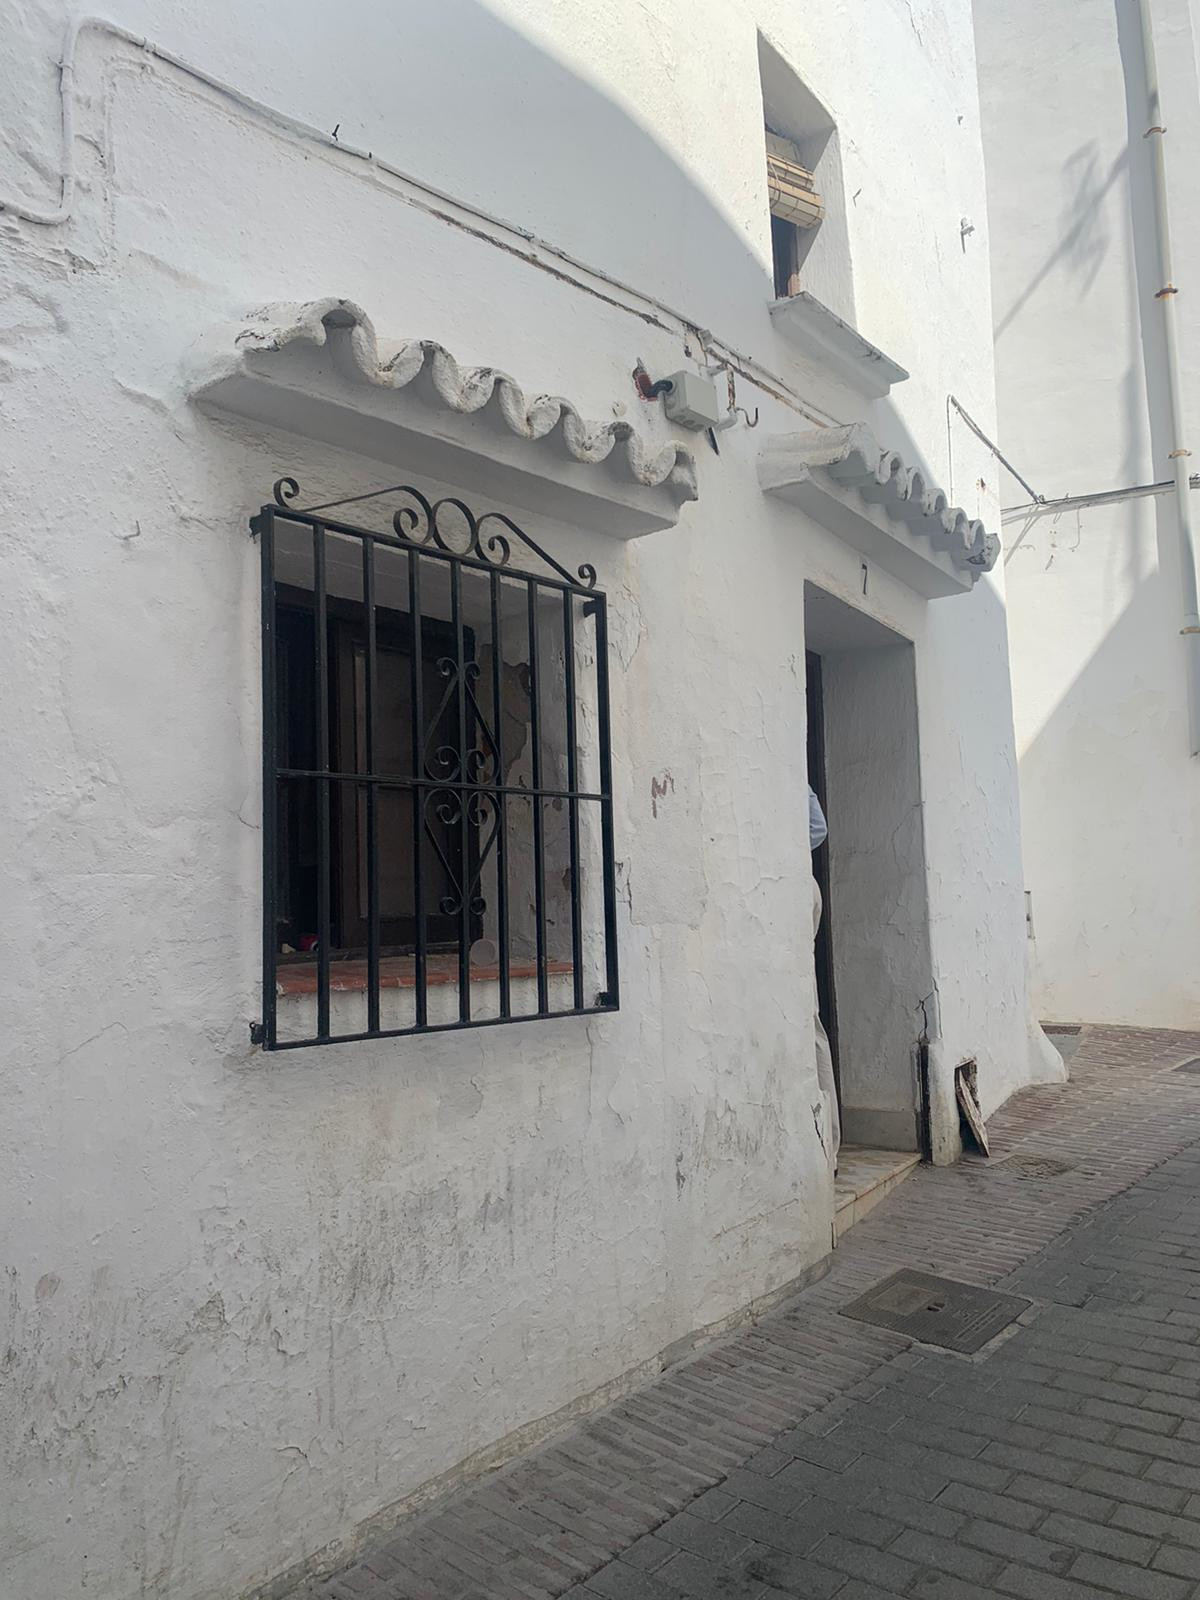 2 Bedroom Terraced Townhouse For Sale Ojén